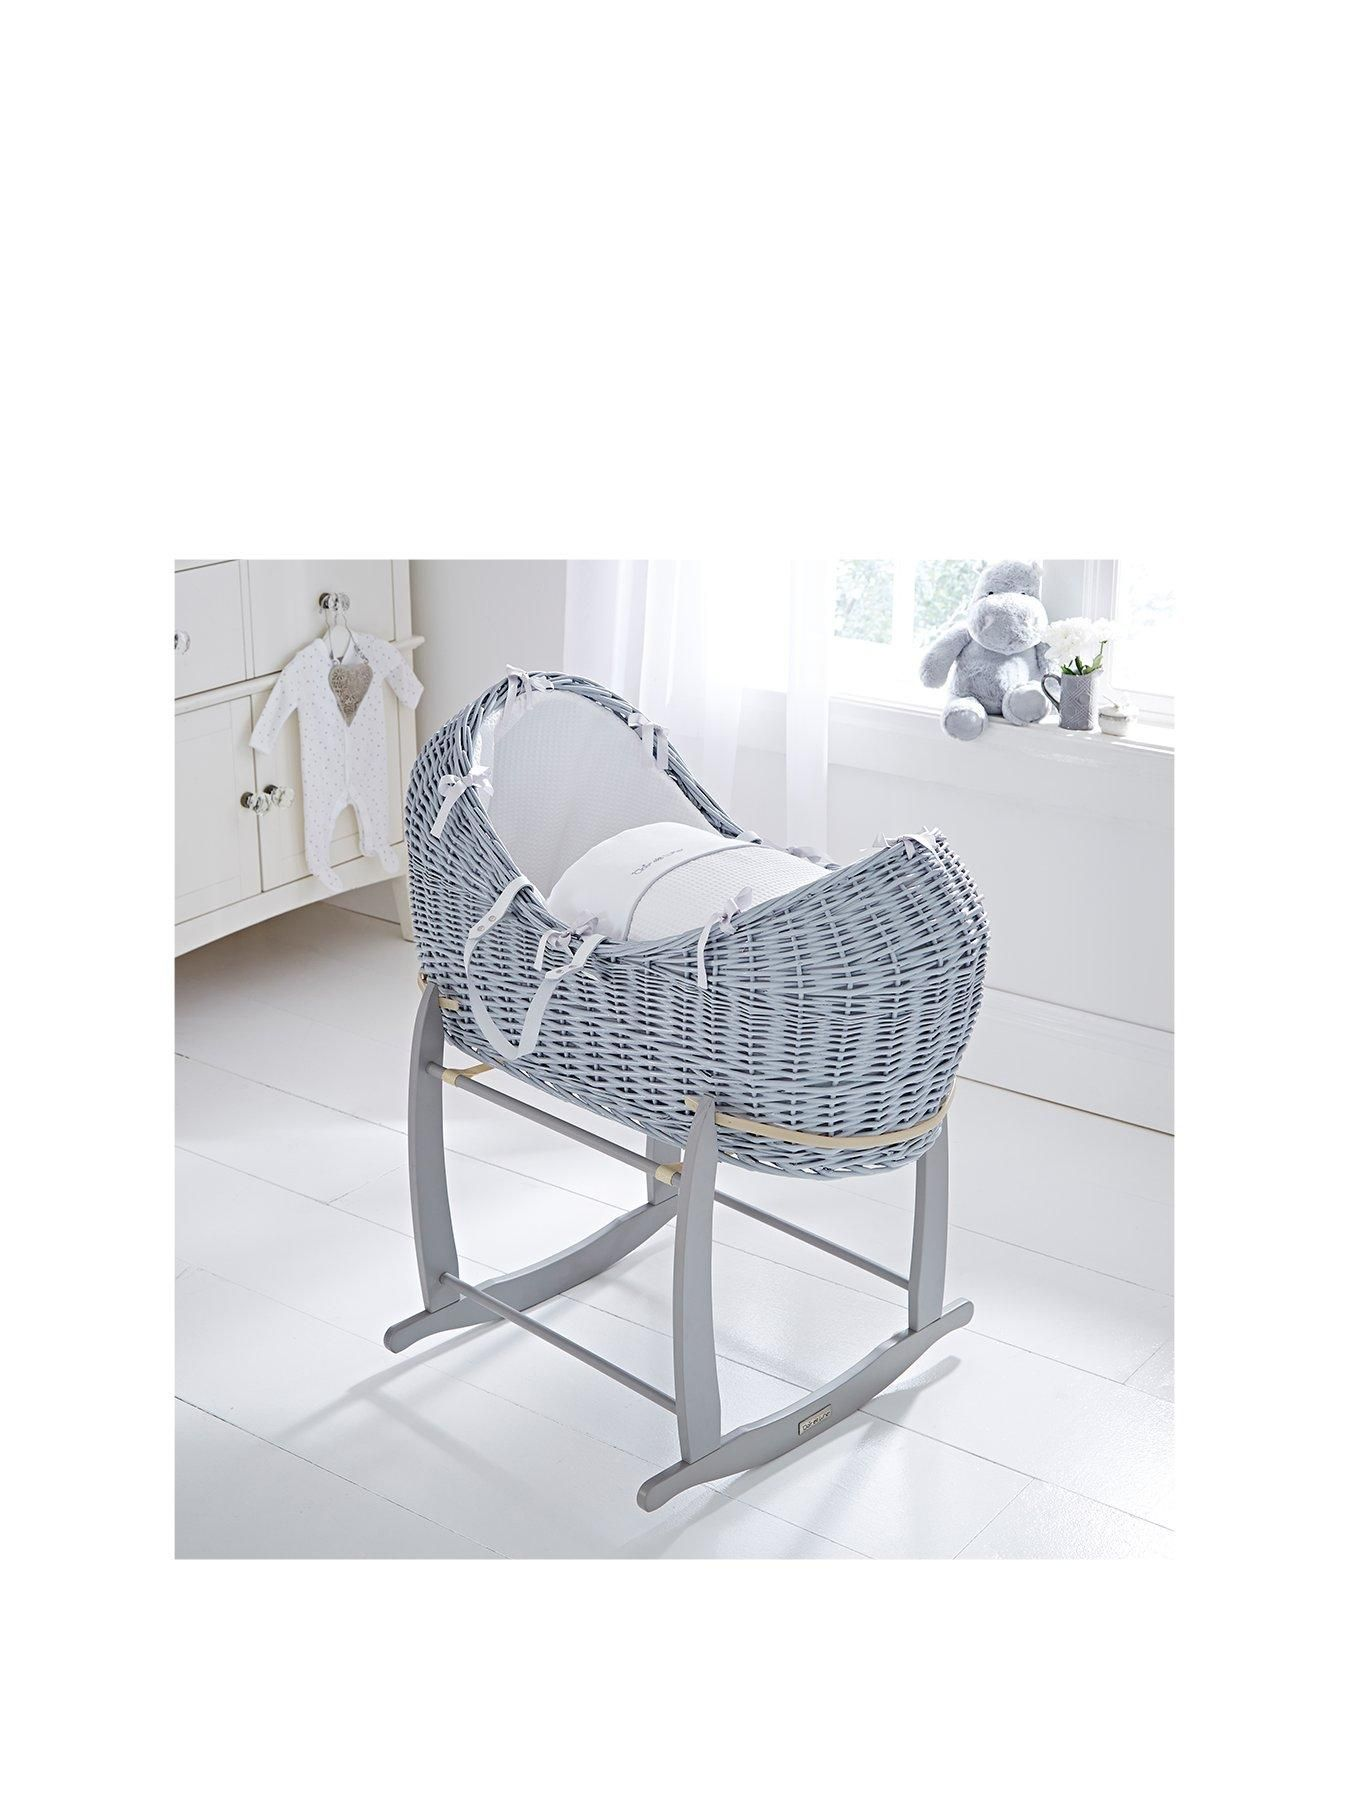 Grey Clair de Lune Deluxe Rocking Moses Basket Stand